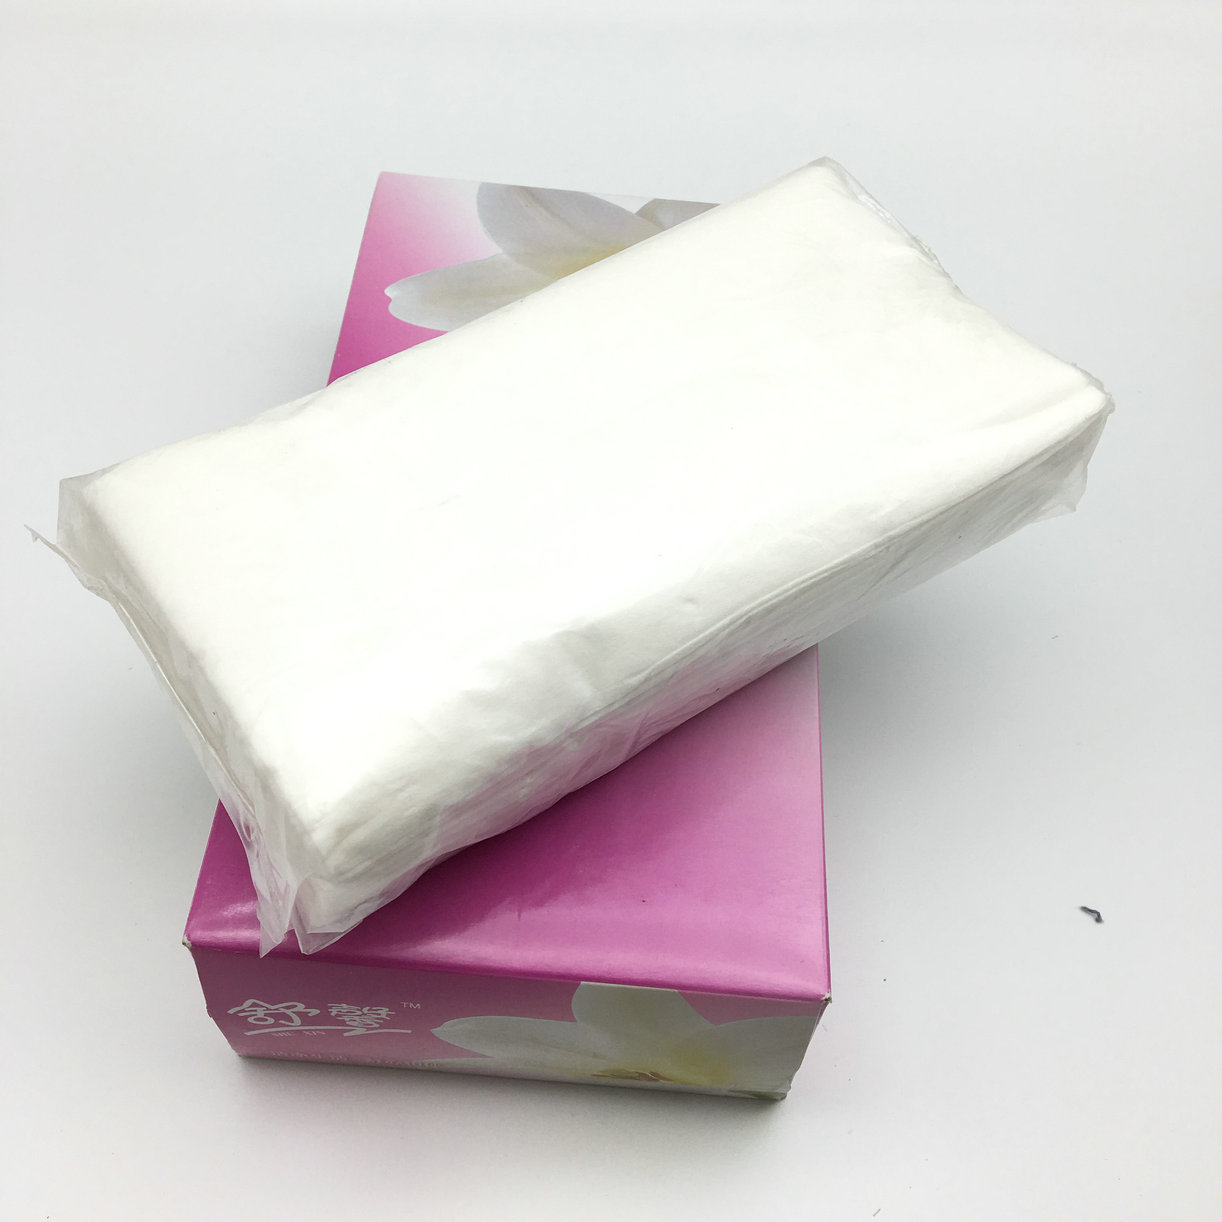 2ply paper box tissues soft paper tissue boxmulti-layer paper facial tissue paper - .bio-tableware.com & 2ply paper box tissues soft paper tissue boxmulti-layer paper ...